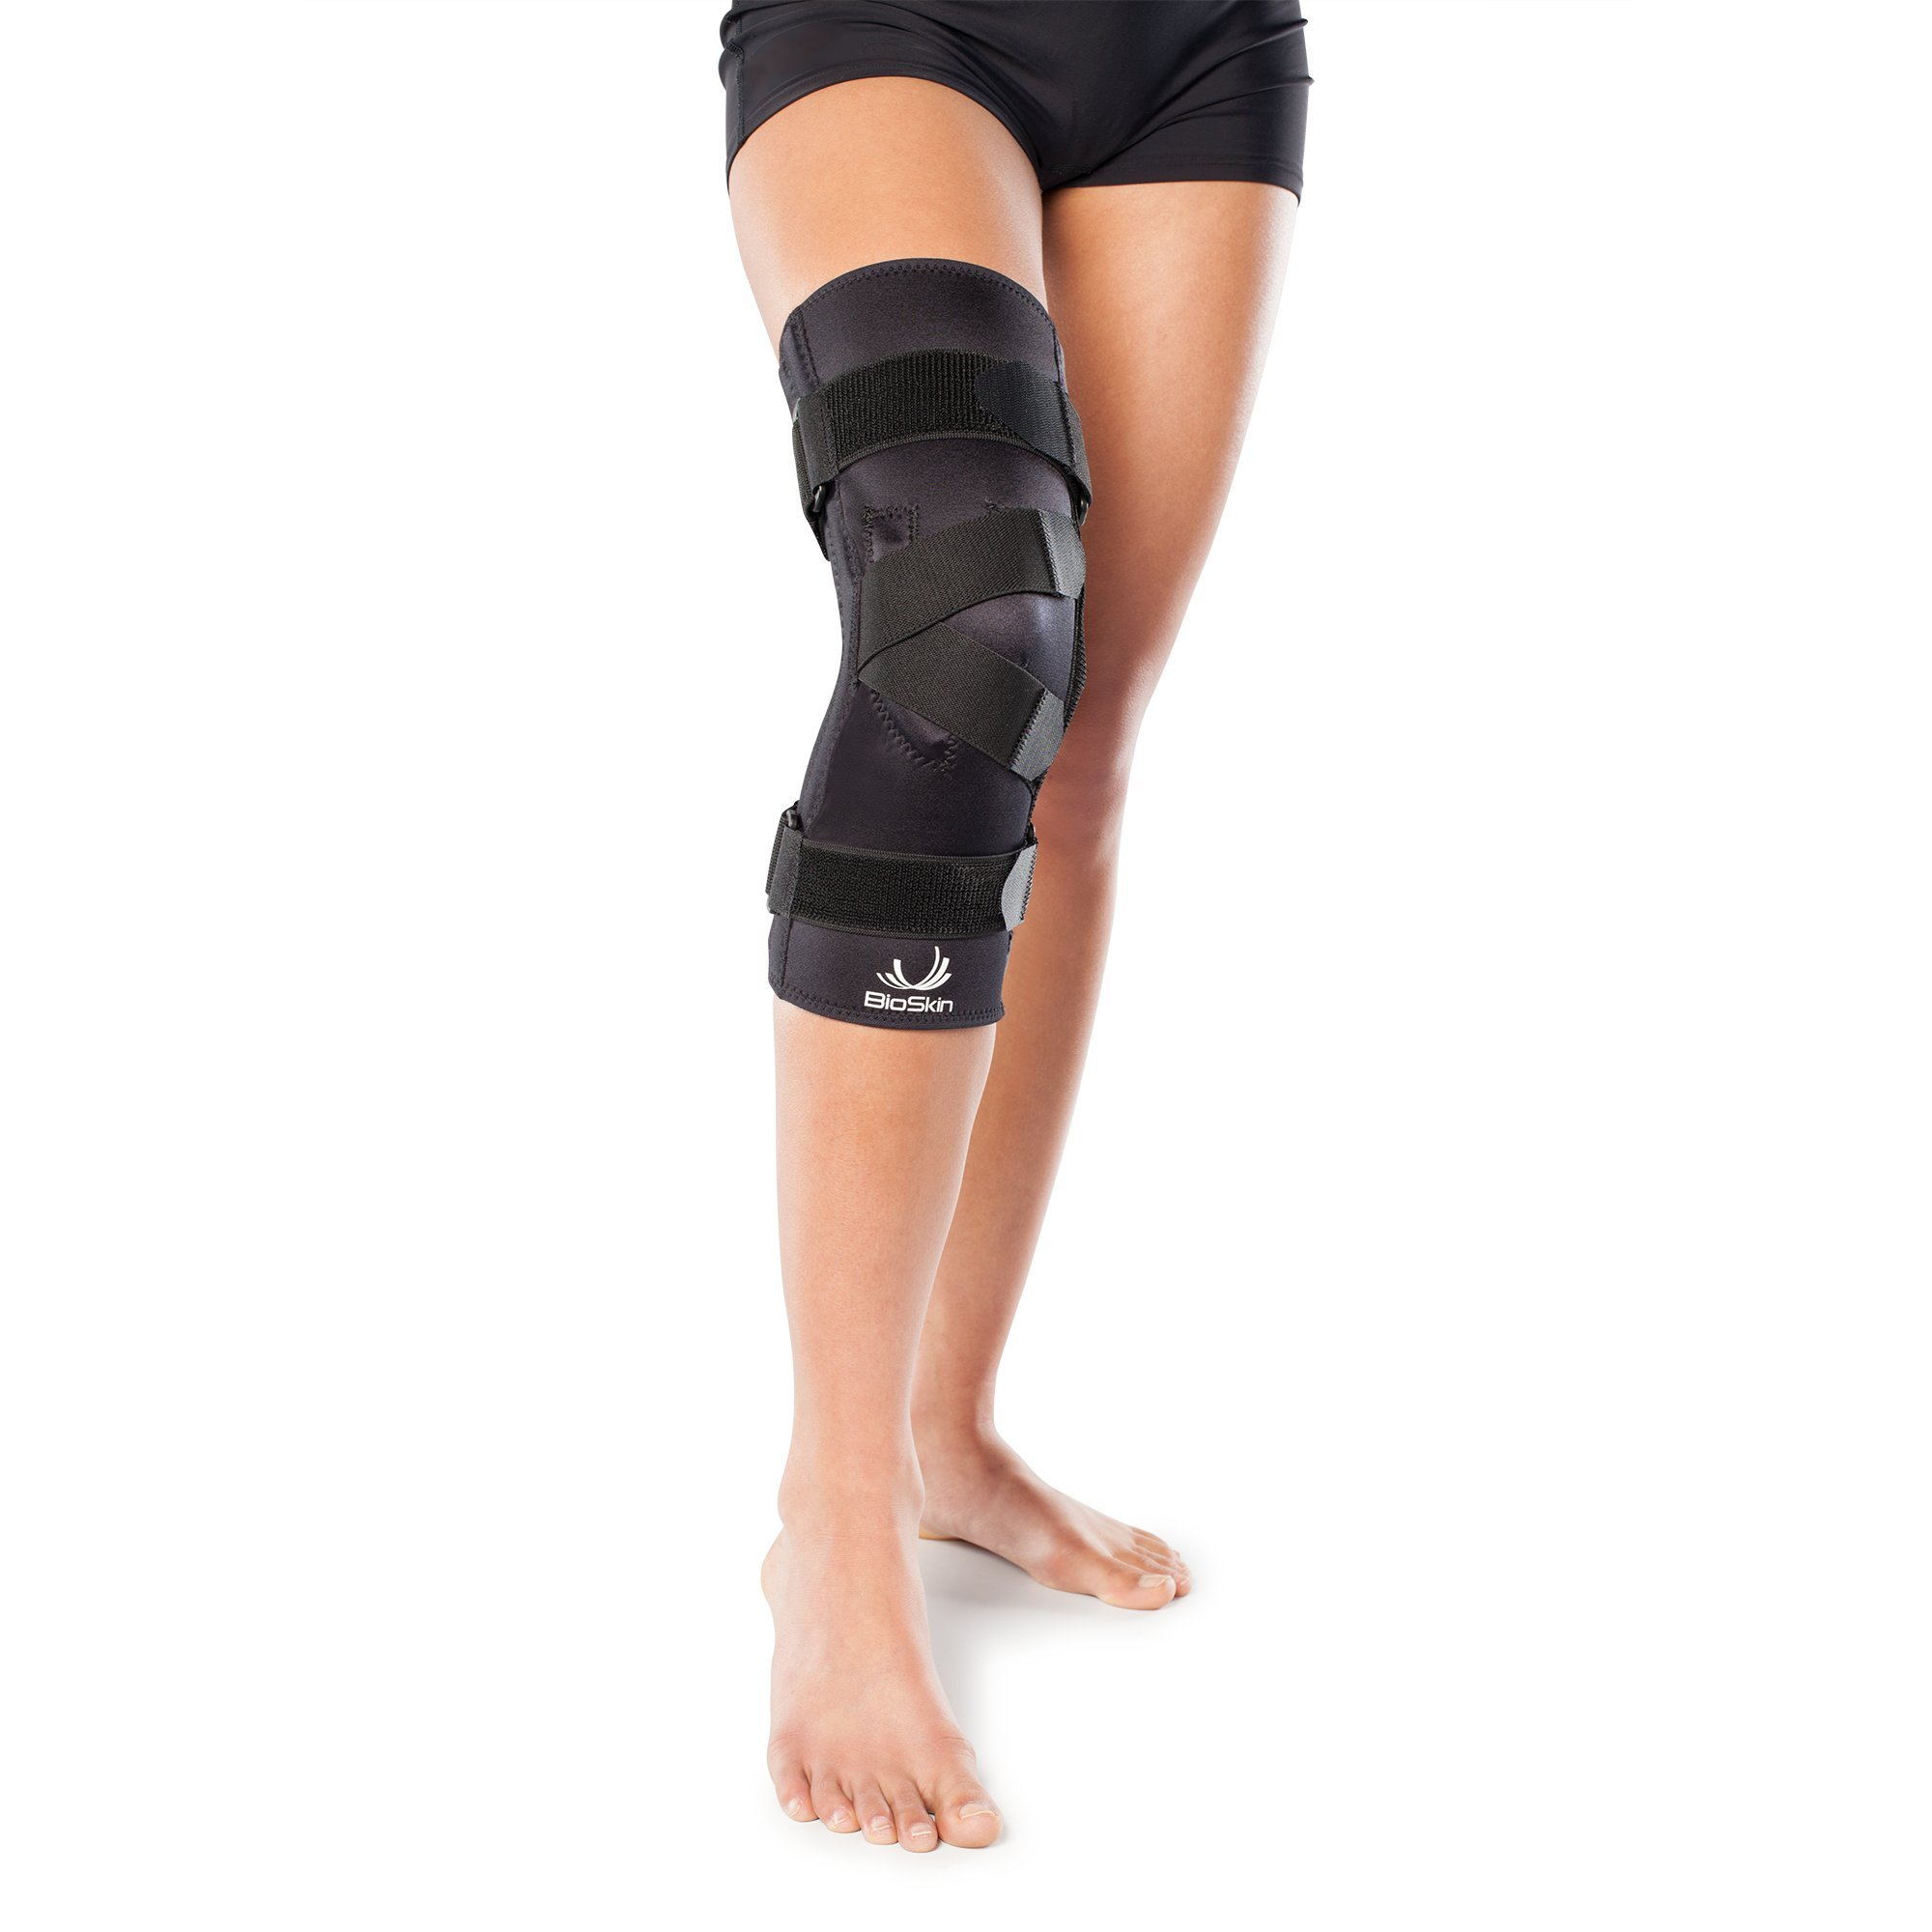 Premium J Knee Brace for Patella Support & Patella Tracking, Patellofemoral Pain and Dislocation- by BioSkin (L Left)